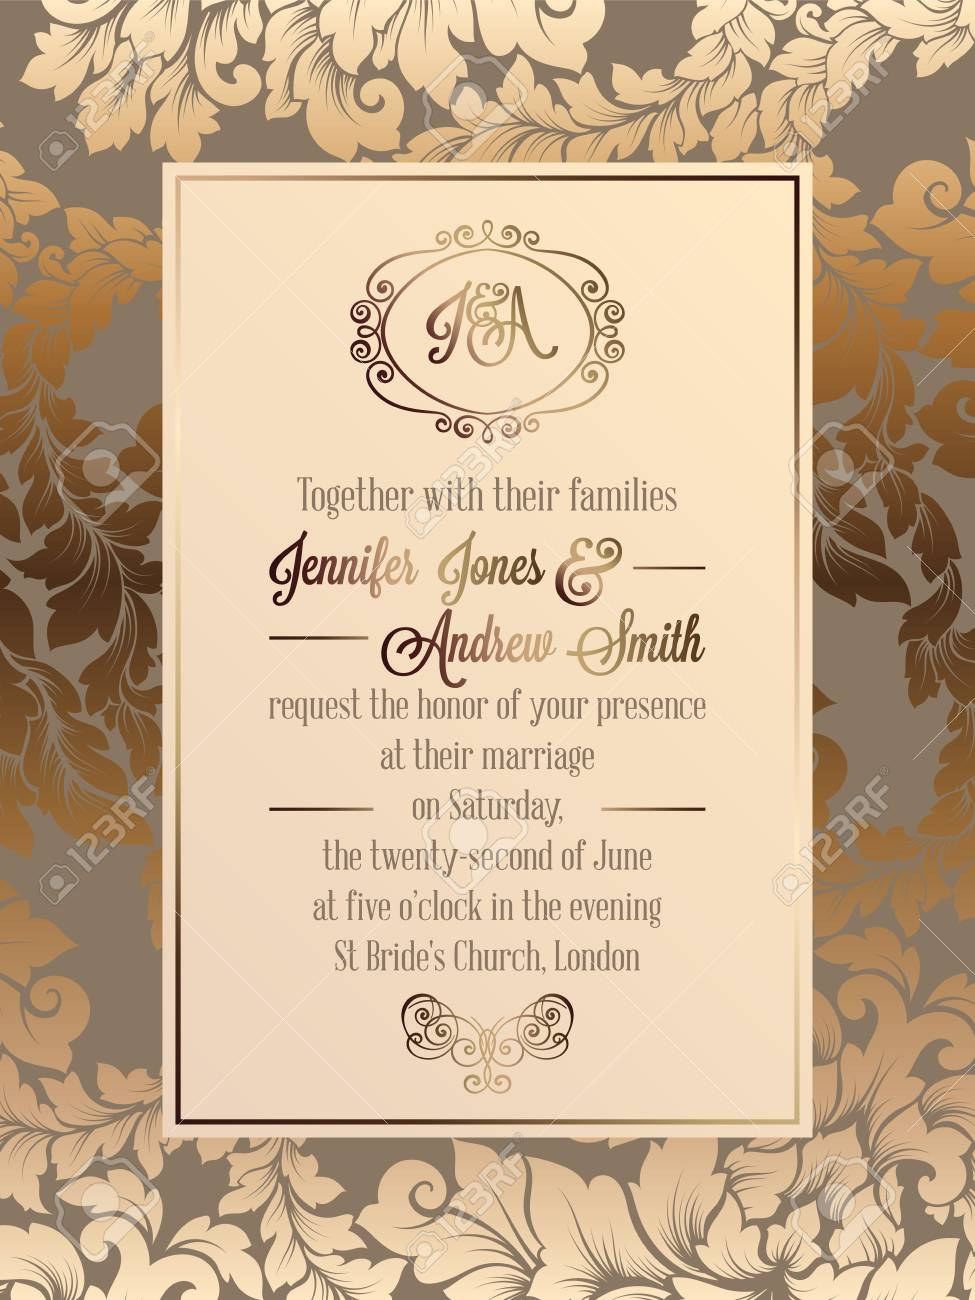 Vintage baroque style wedding invitation card template elegant vector vintage baroque style wedding invitation card template elegant formal design with damask background traditional decoration for wedding stopboris Image collections